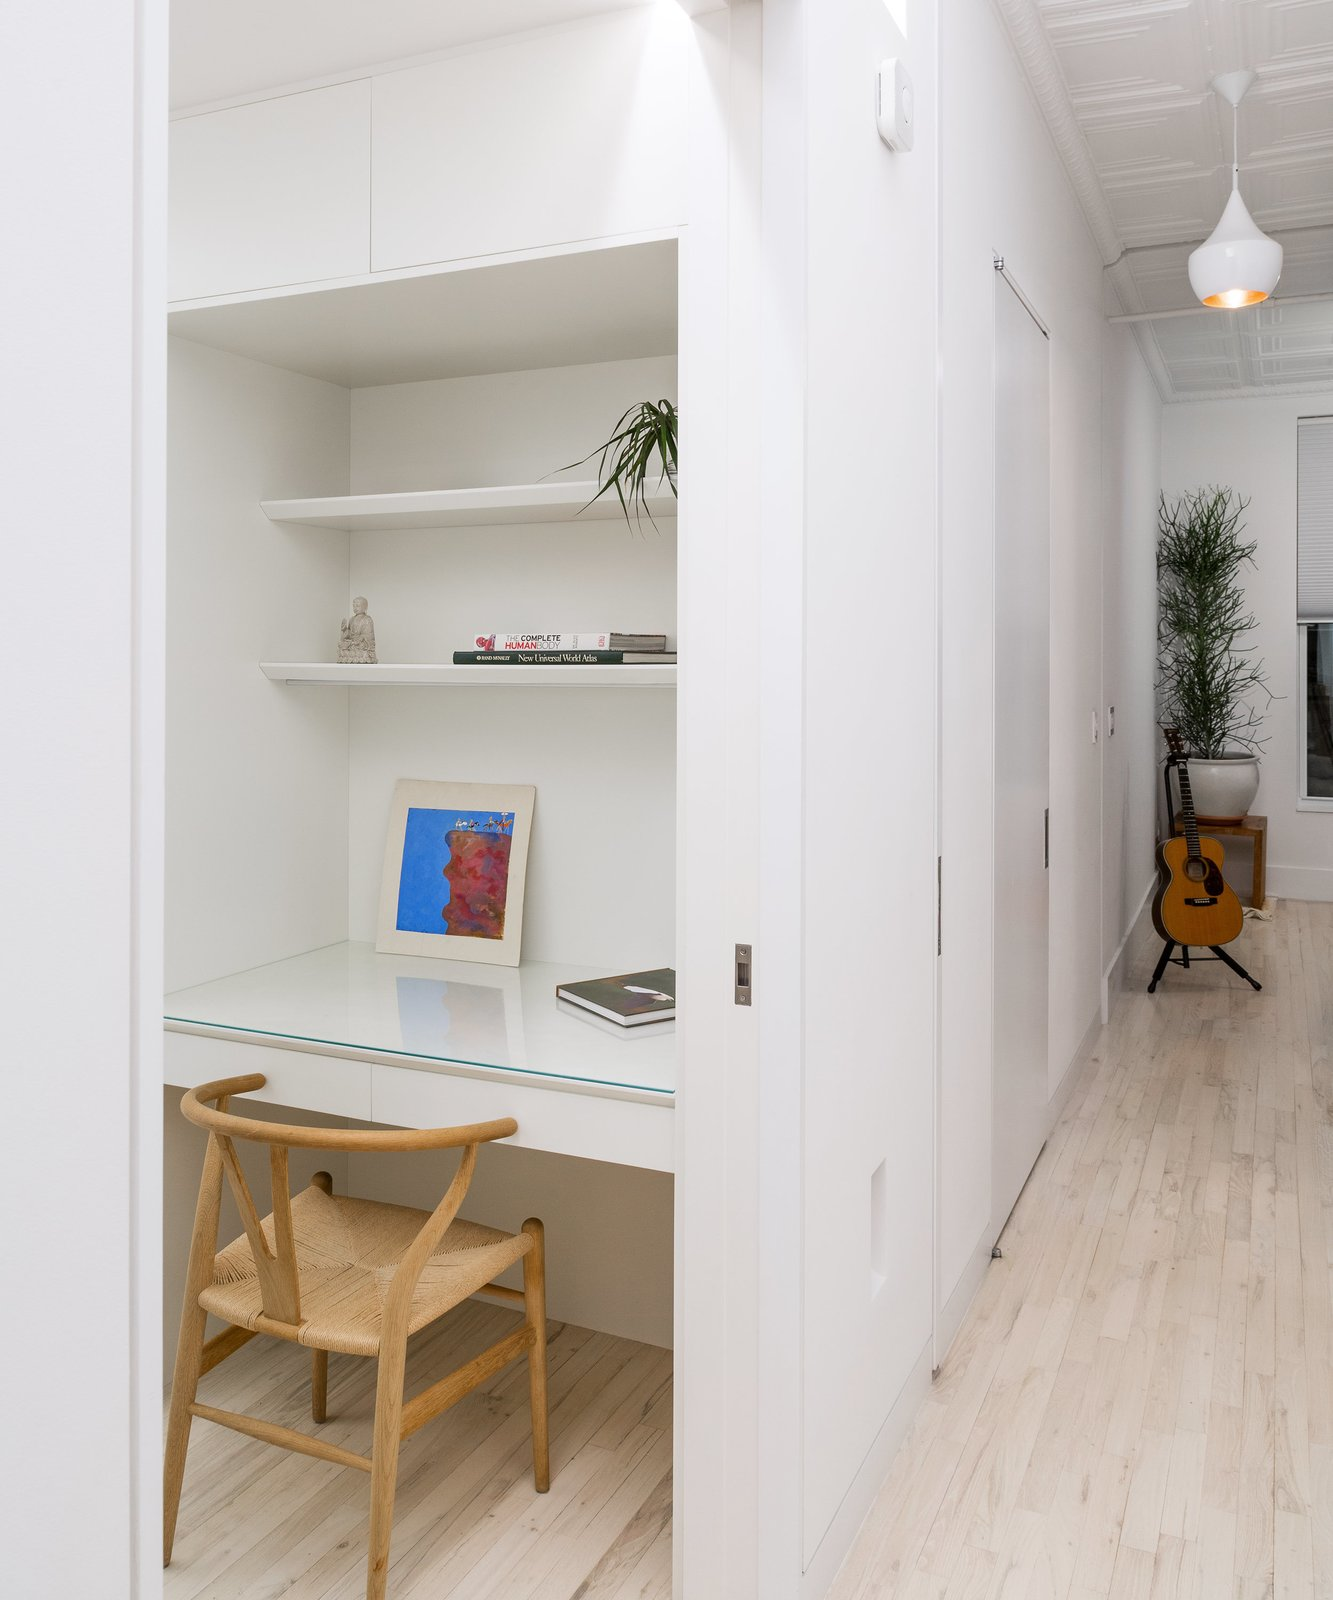 Office, Study Room Type, Bookcase, Shelves, Lamps, Light Hardwood Floor, Chair, Storage, and Desk Inside the Cube, a Wishbone chair by Hans Wegner pulls up to a built-in painted lacquer desk.  Photo 6 of 8 in This 60-Square-Foot Structure Divides and Conquers in a Manhattan Renovation